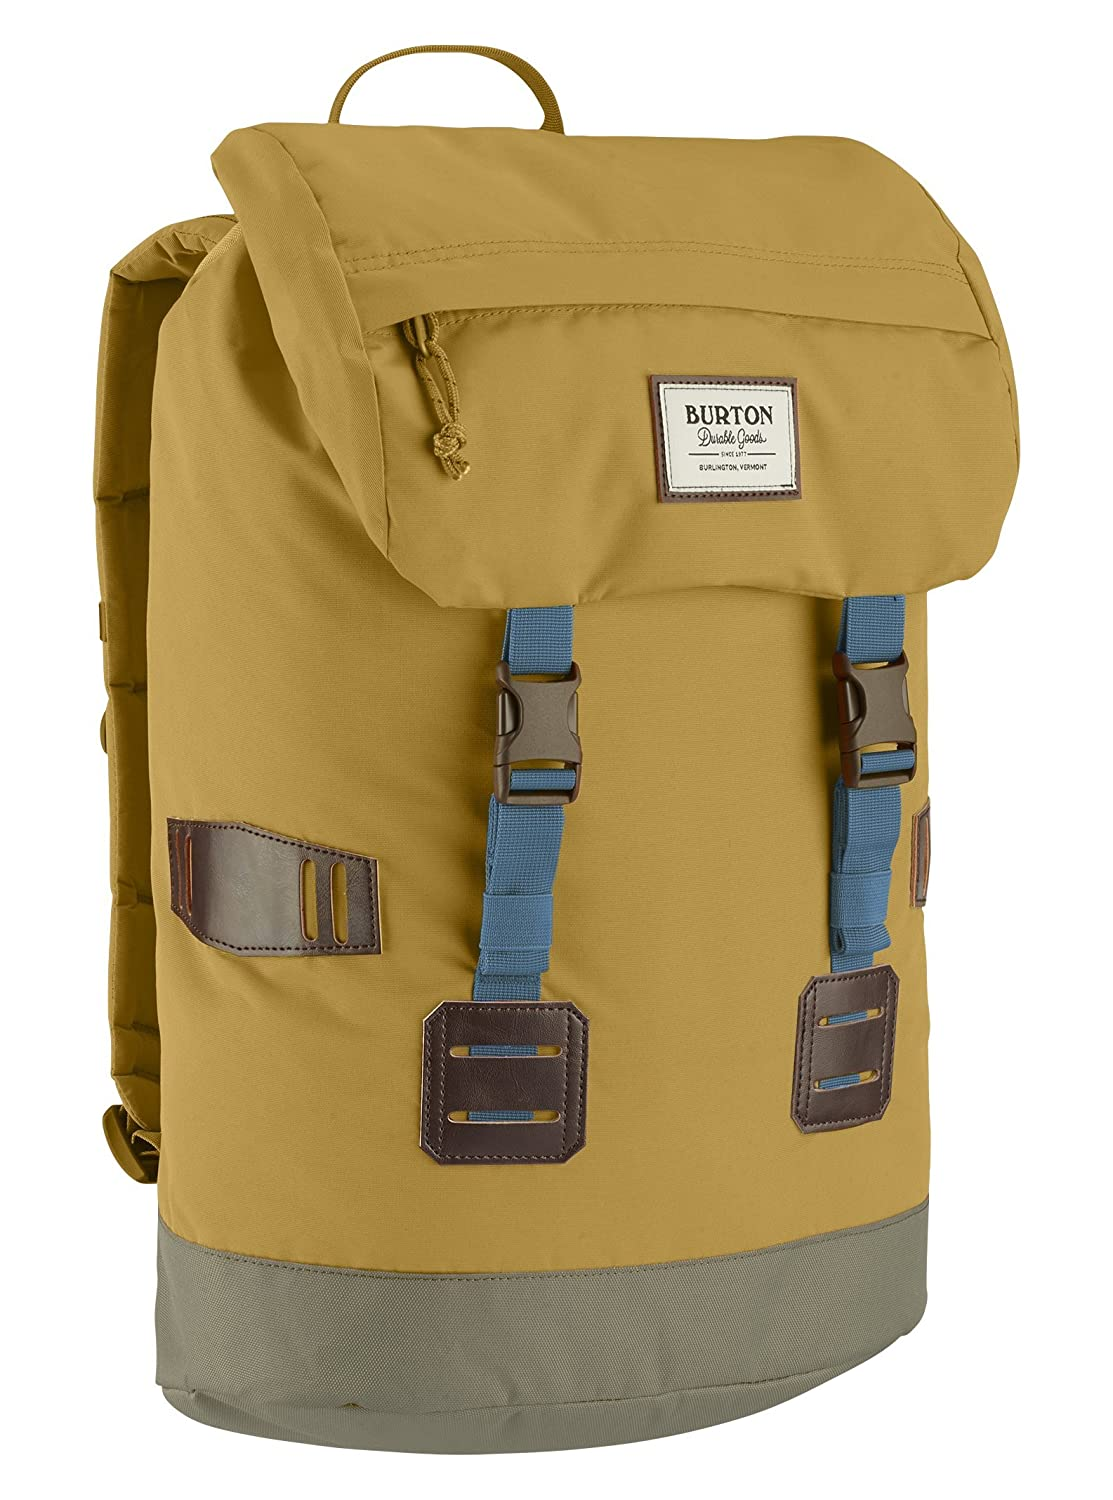 Gifts-For-19-Year-Old-Boy-Backpack